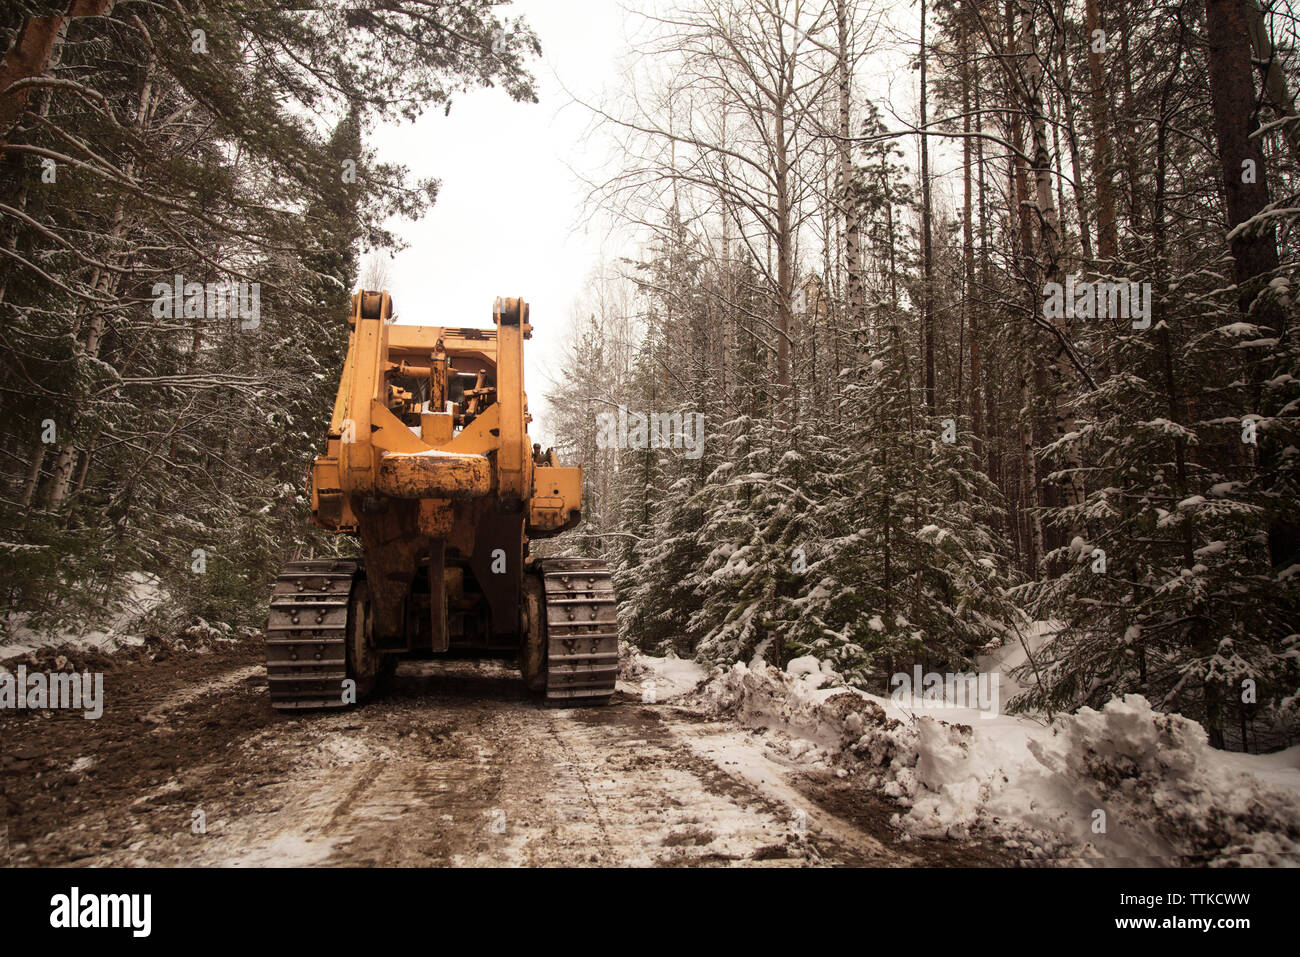 Snow Mover Stock Photos & Snow Mover Stock Images - Alamy